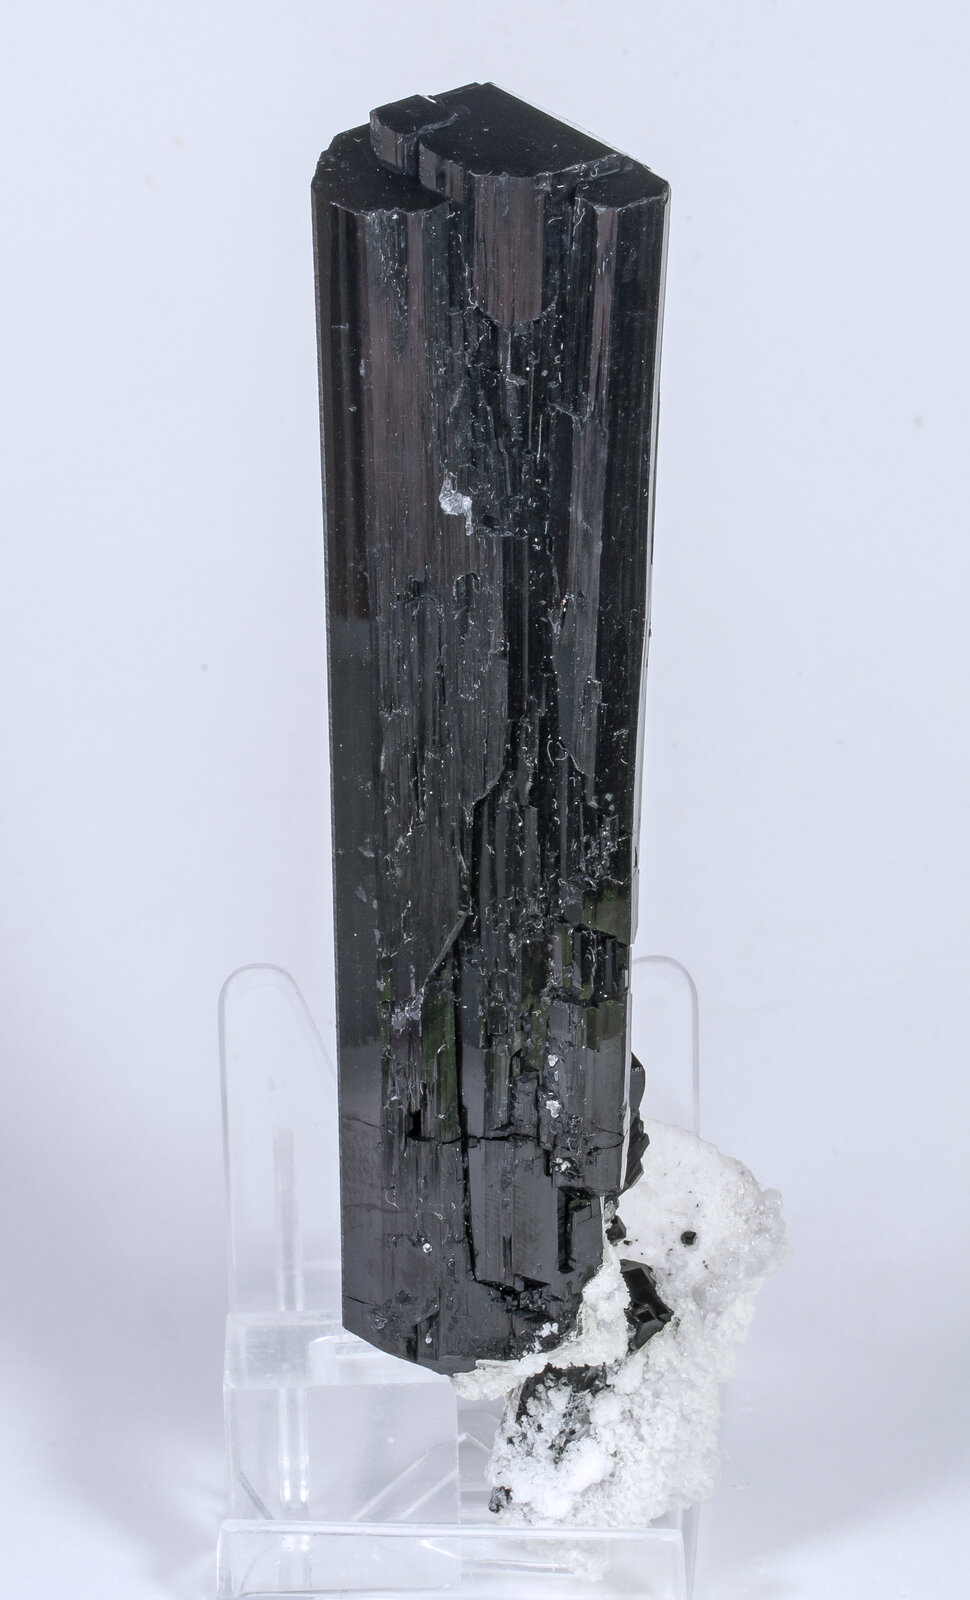 specimens/s_imagesAM8/Schorl-TP99AM8f.jpg